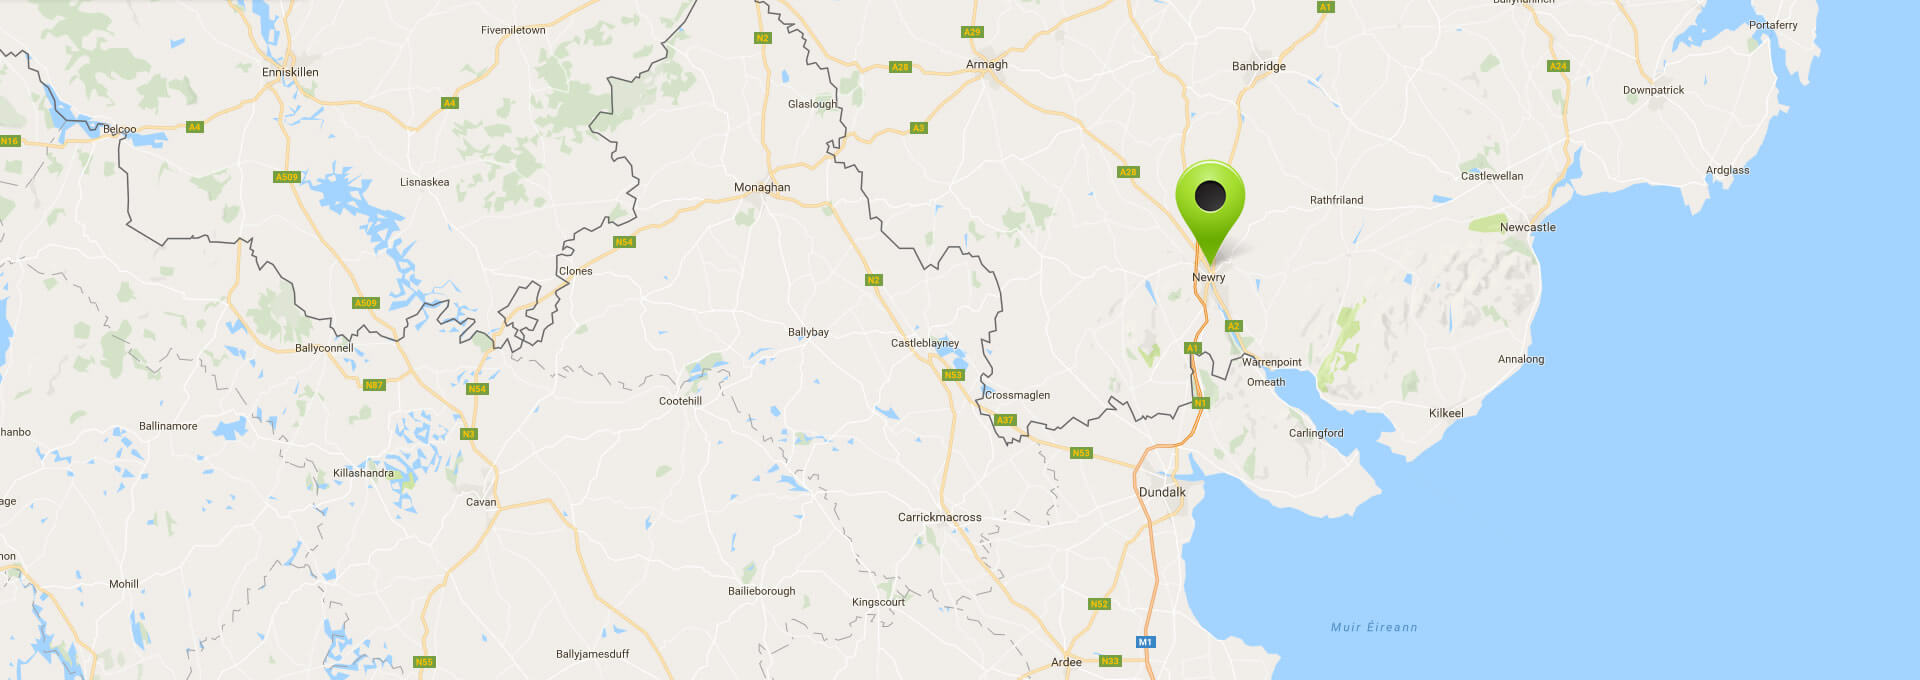 Our location in Newry